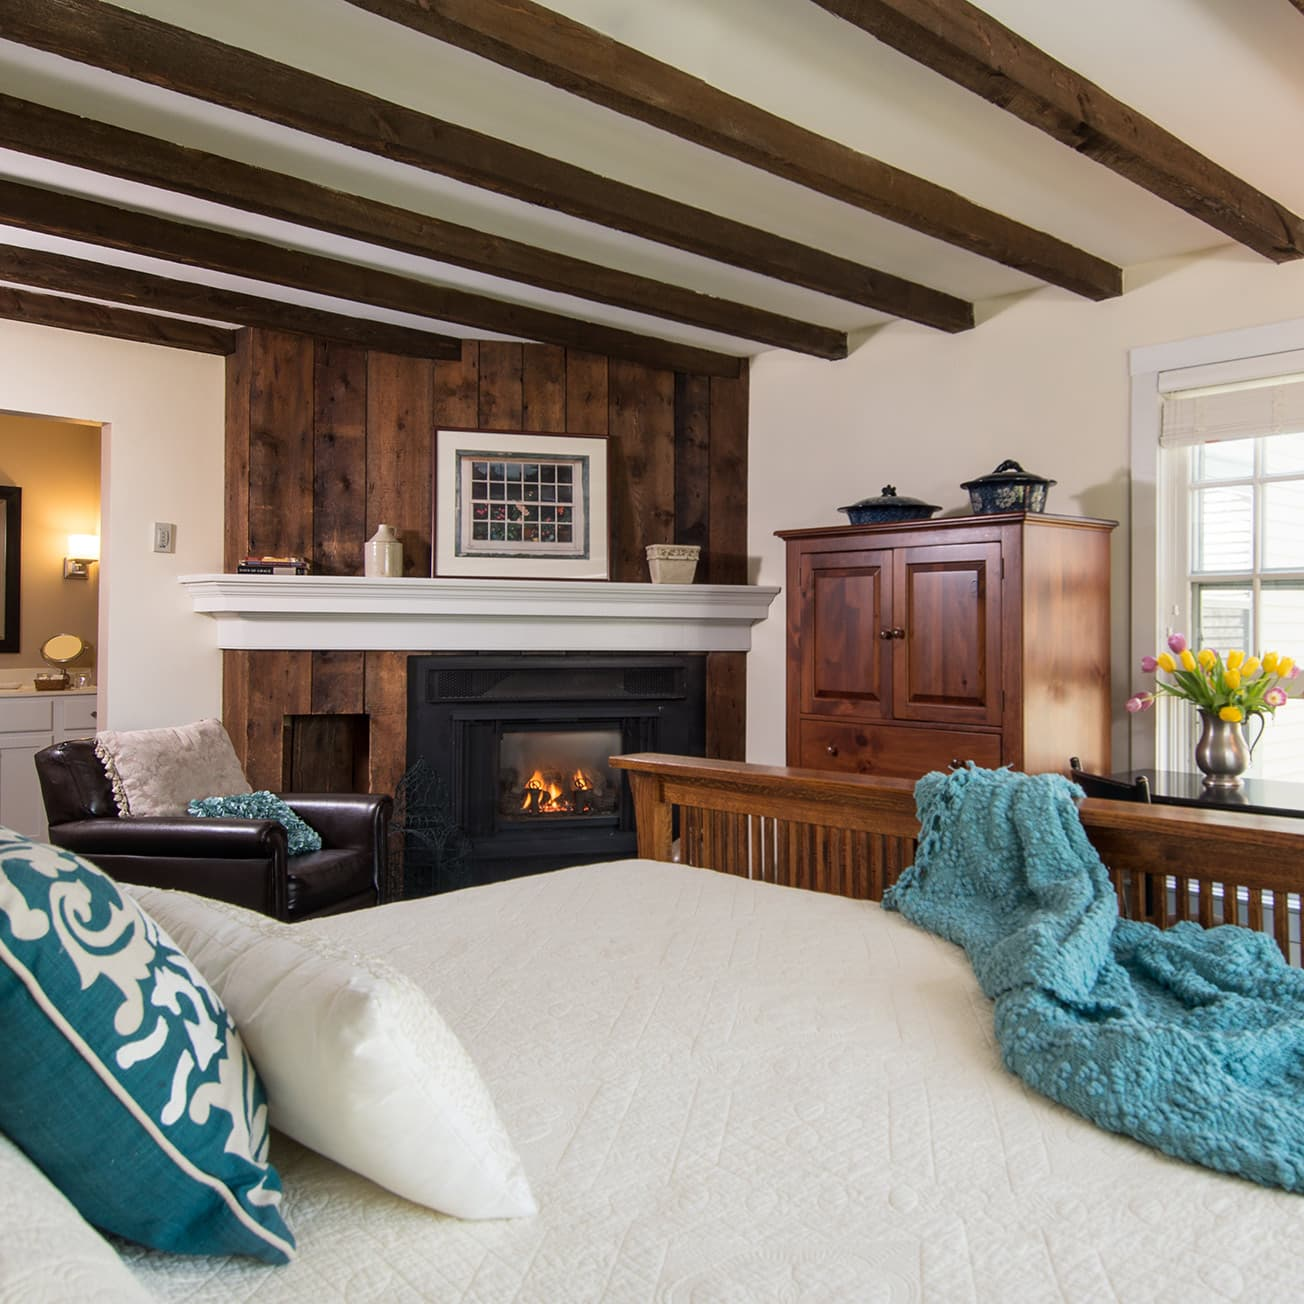 Room at the Chesterfield Inn with cozy bed and fireplace